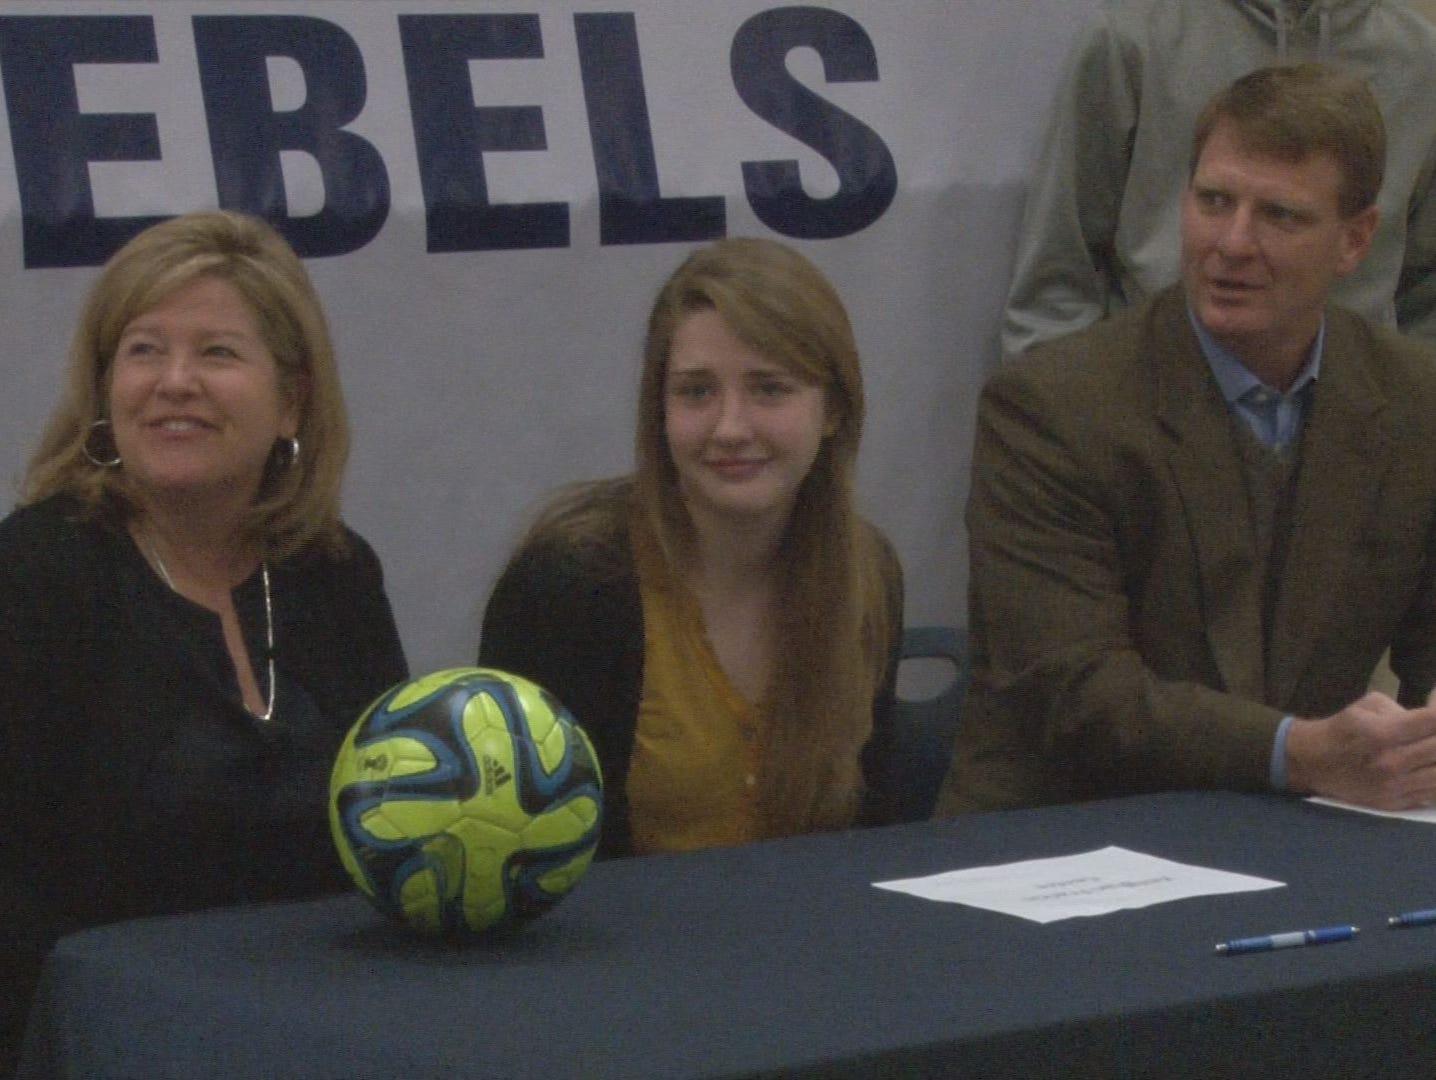 Keeghan Francis, West, during a National Signing Day ceremony